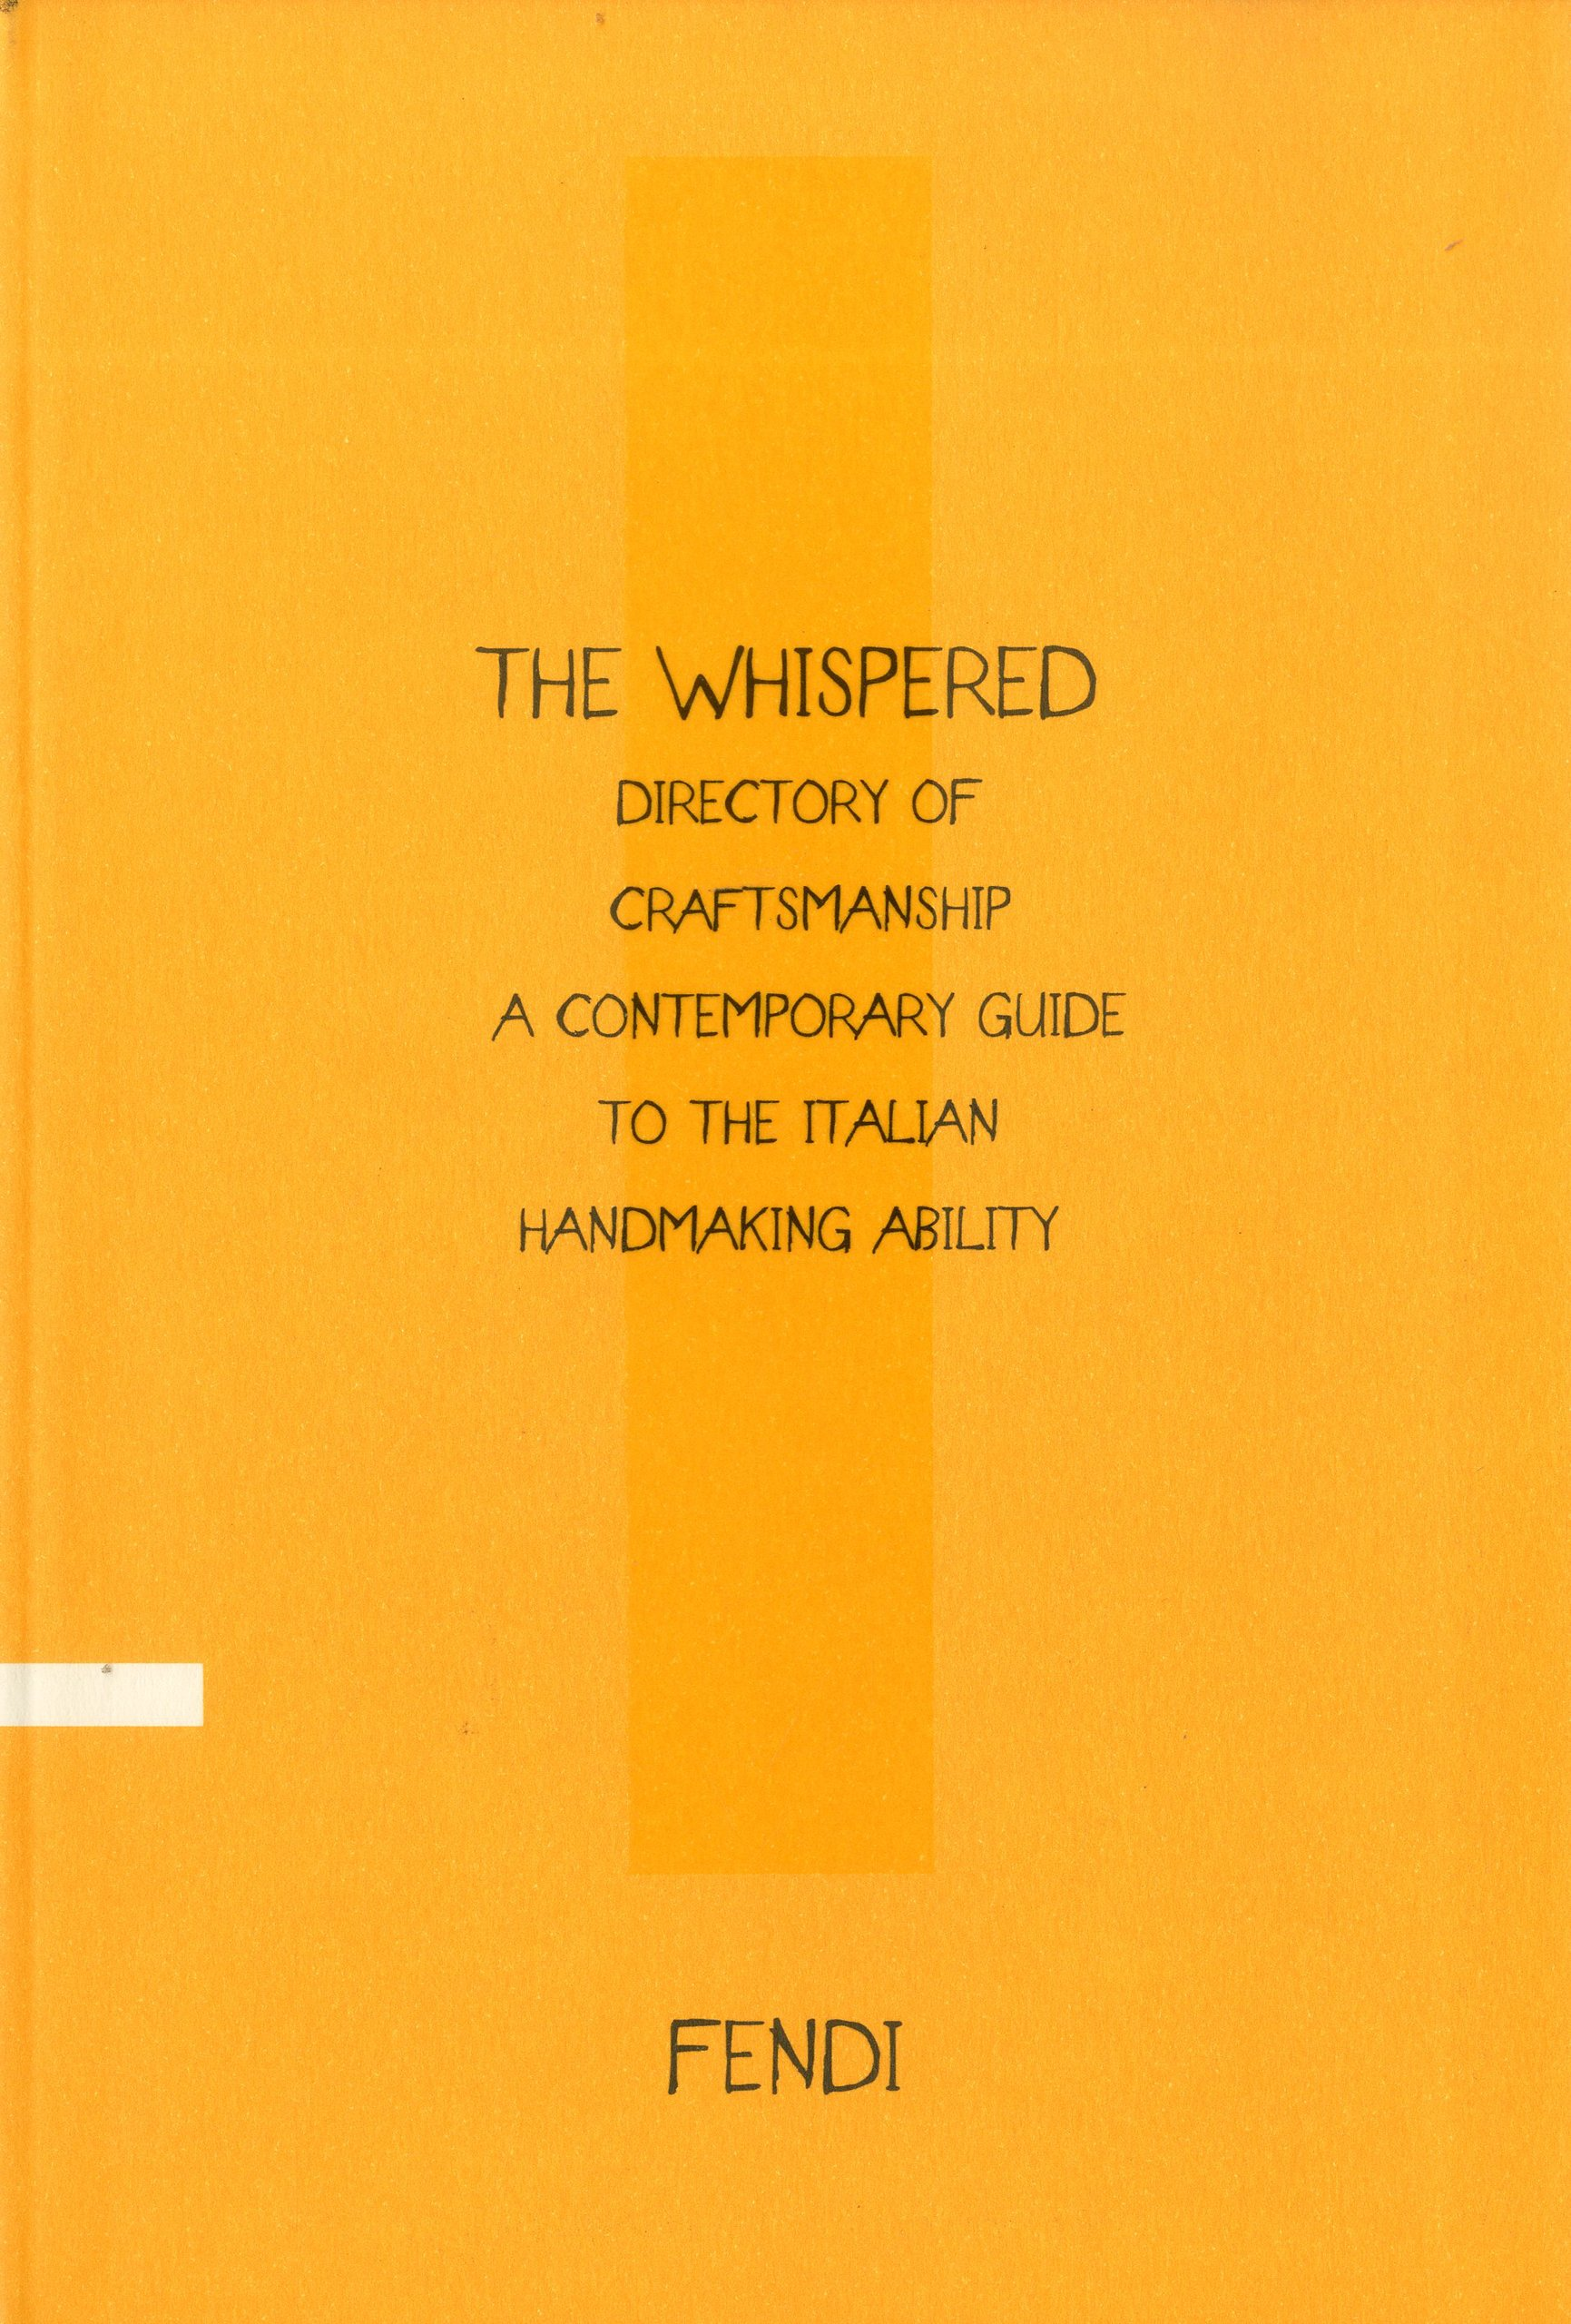 The Whispered Directory of Craftsmanship: A Contemporary Guide to the Italian Handmaking Ability pdf